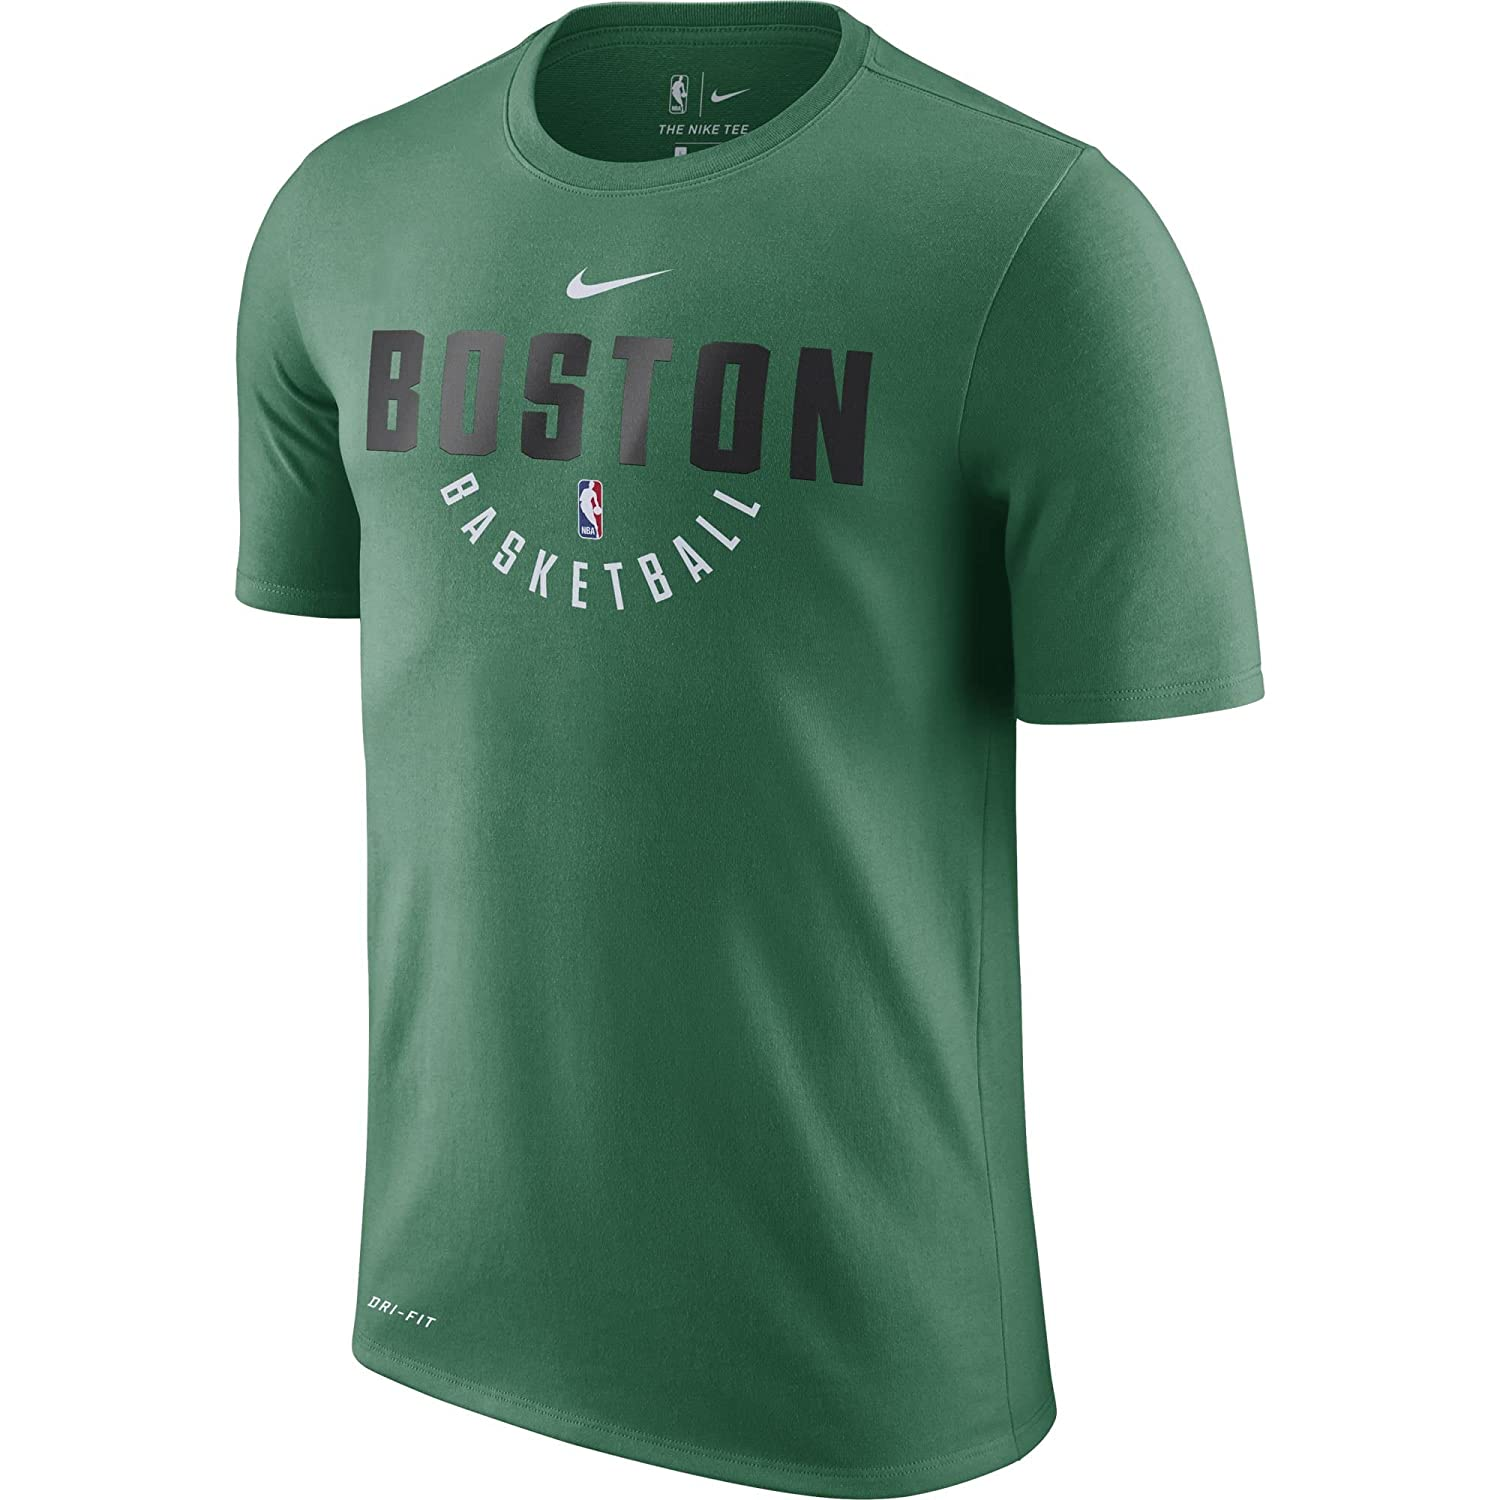 Nike NBA Boston Celtics Kyrie Irving 2017 2018 Dry Basketball Official, Camiseta de Hombre: Amazon.es: Ropa y accesorios